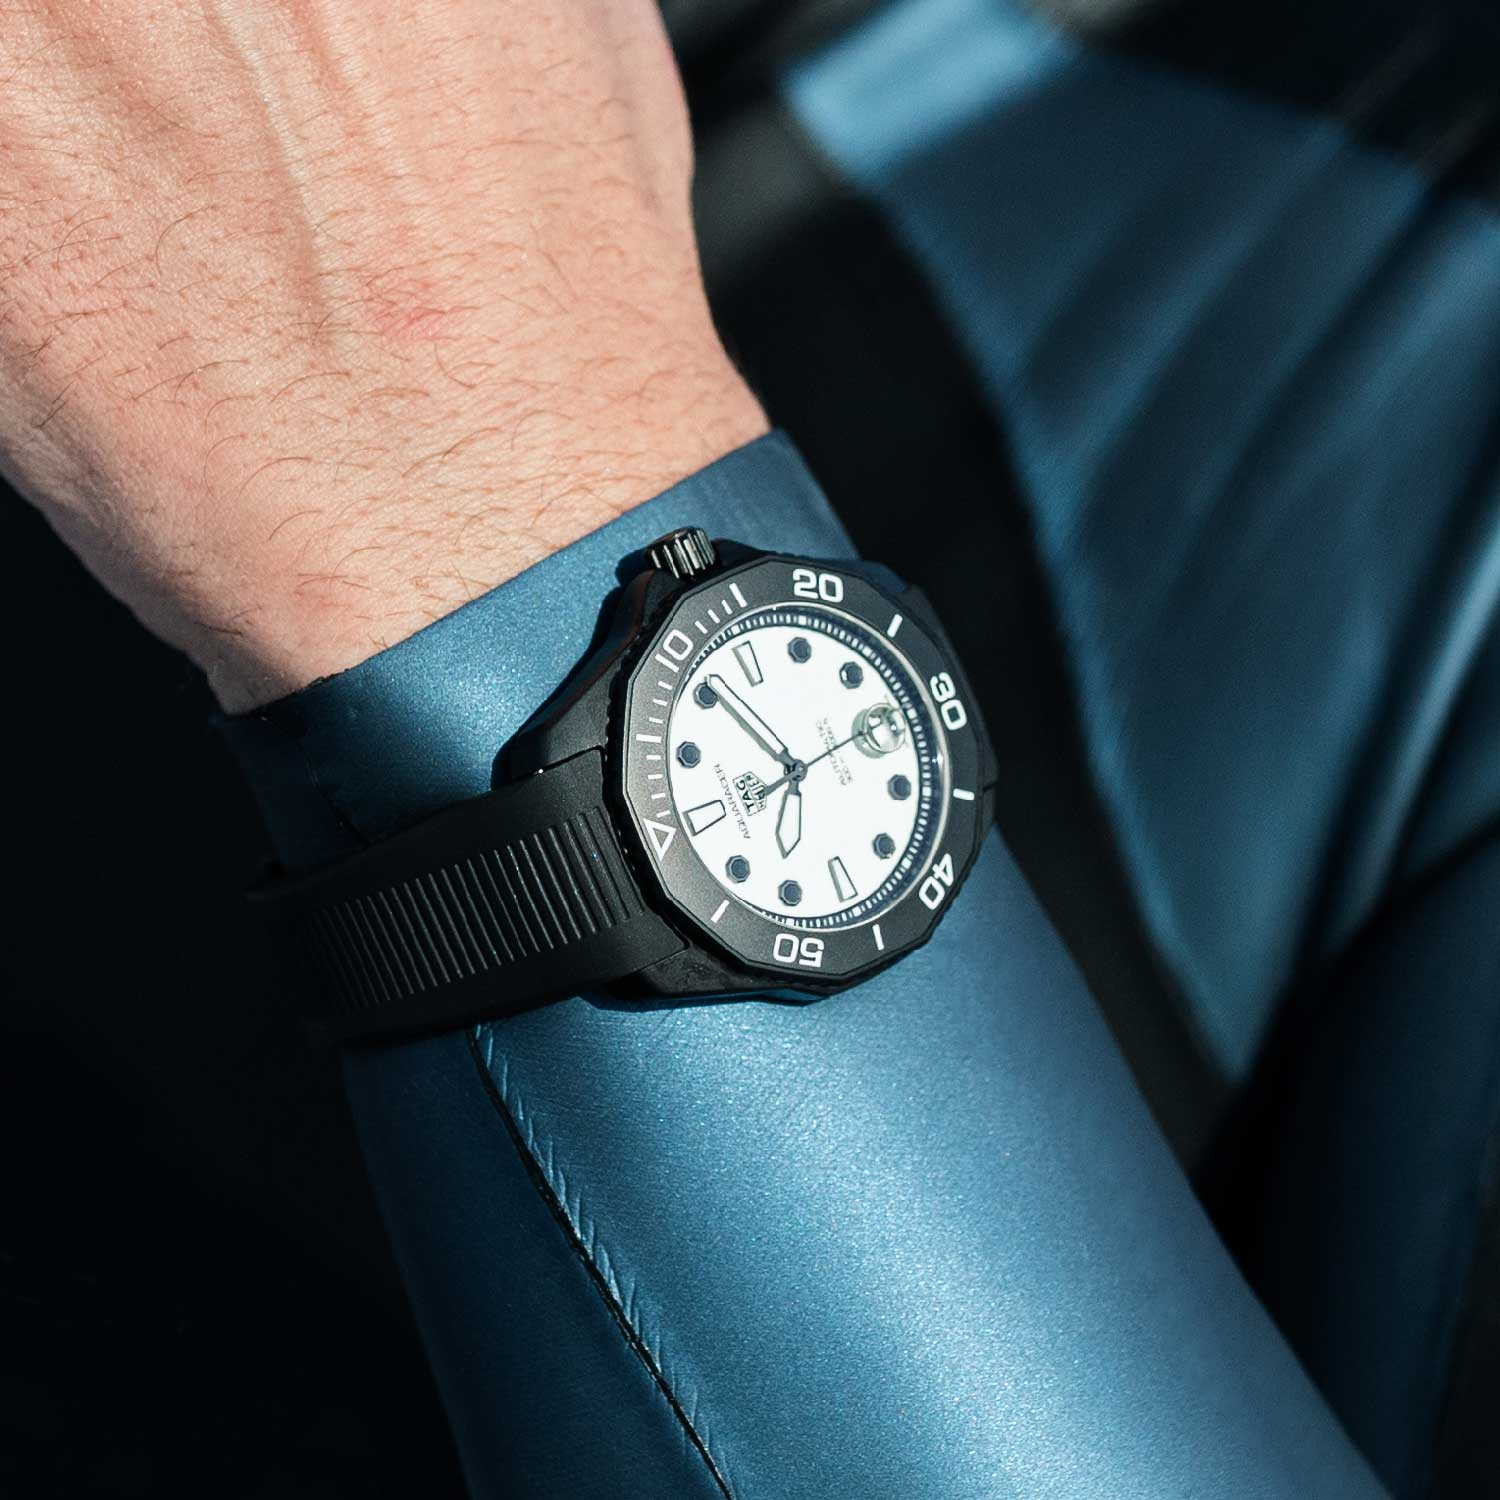 The stainless-steel case, bezel, crown, caseback and clasp are all coated in matt black DLC.